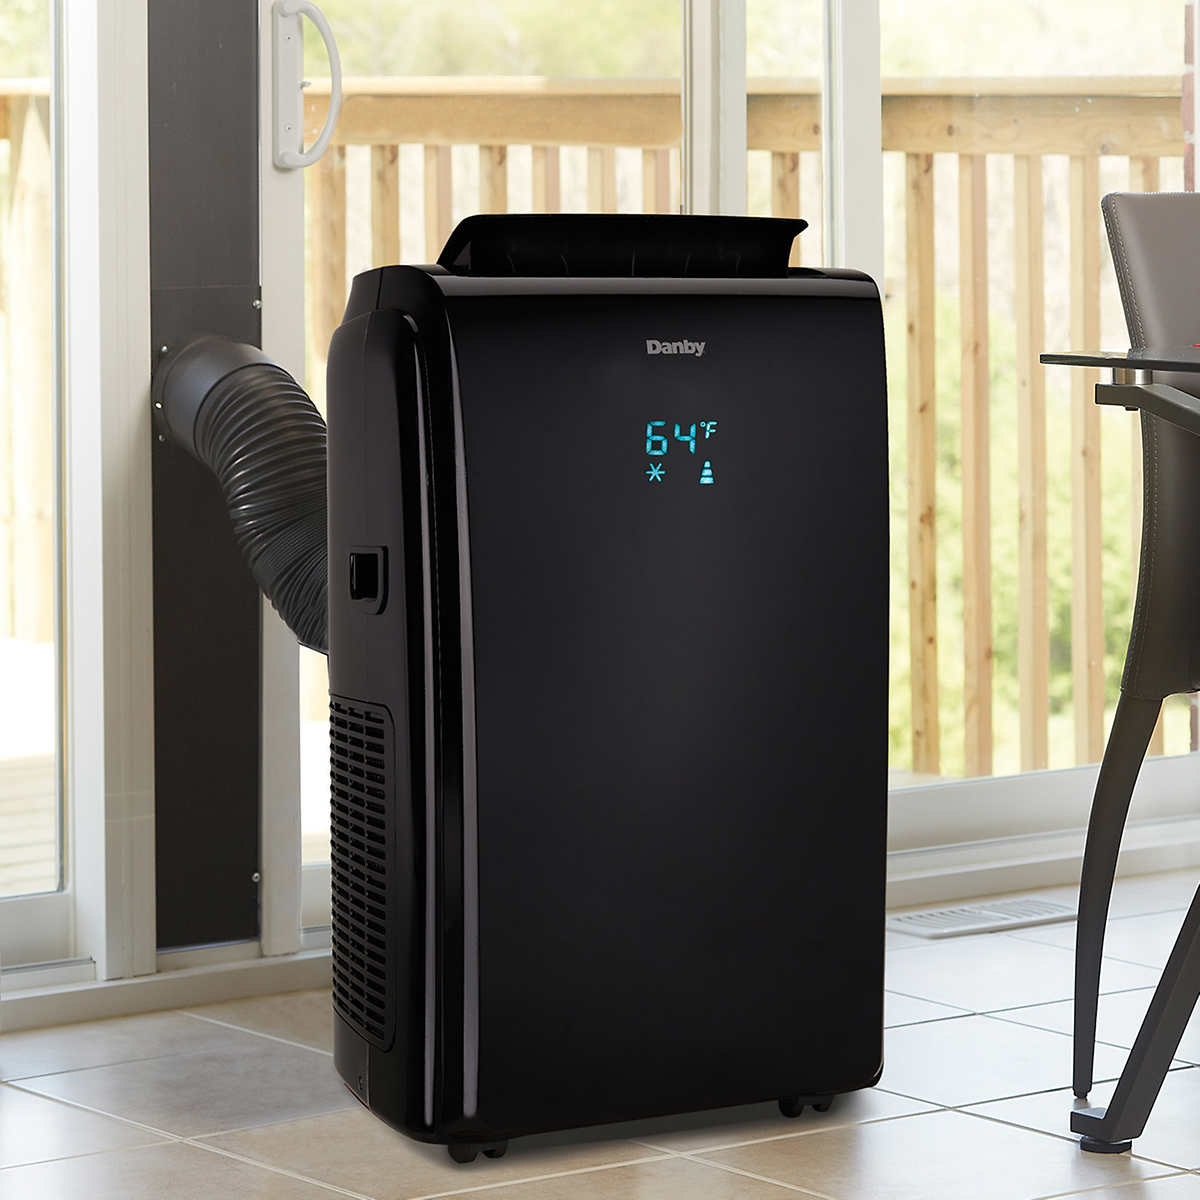 Portable Air Conditioner Troubleshooting Danby 14000 Btu Portable 4 In 1 Air Conditioner With Heat Pump